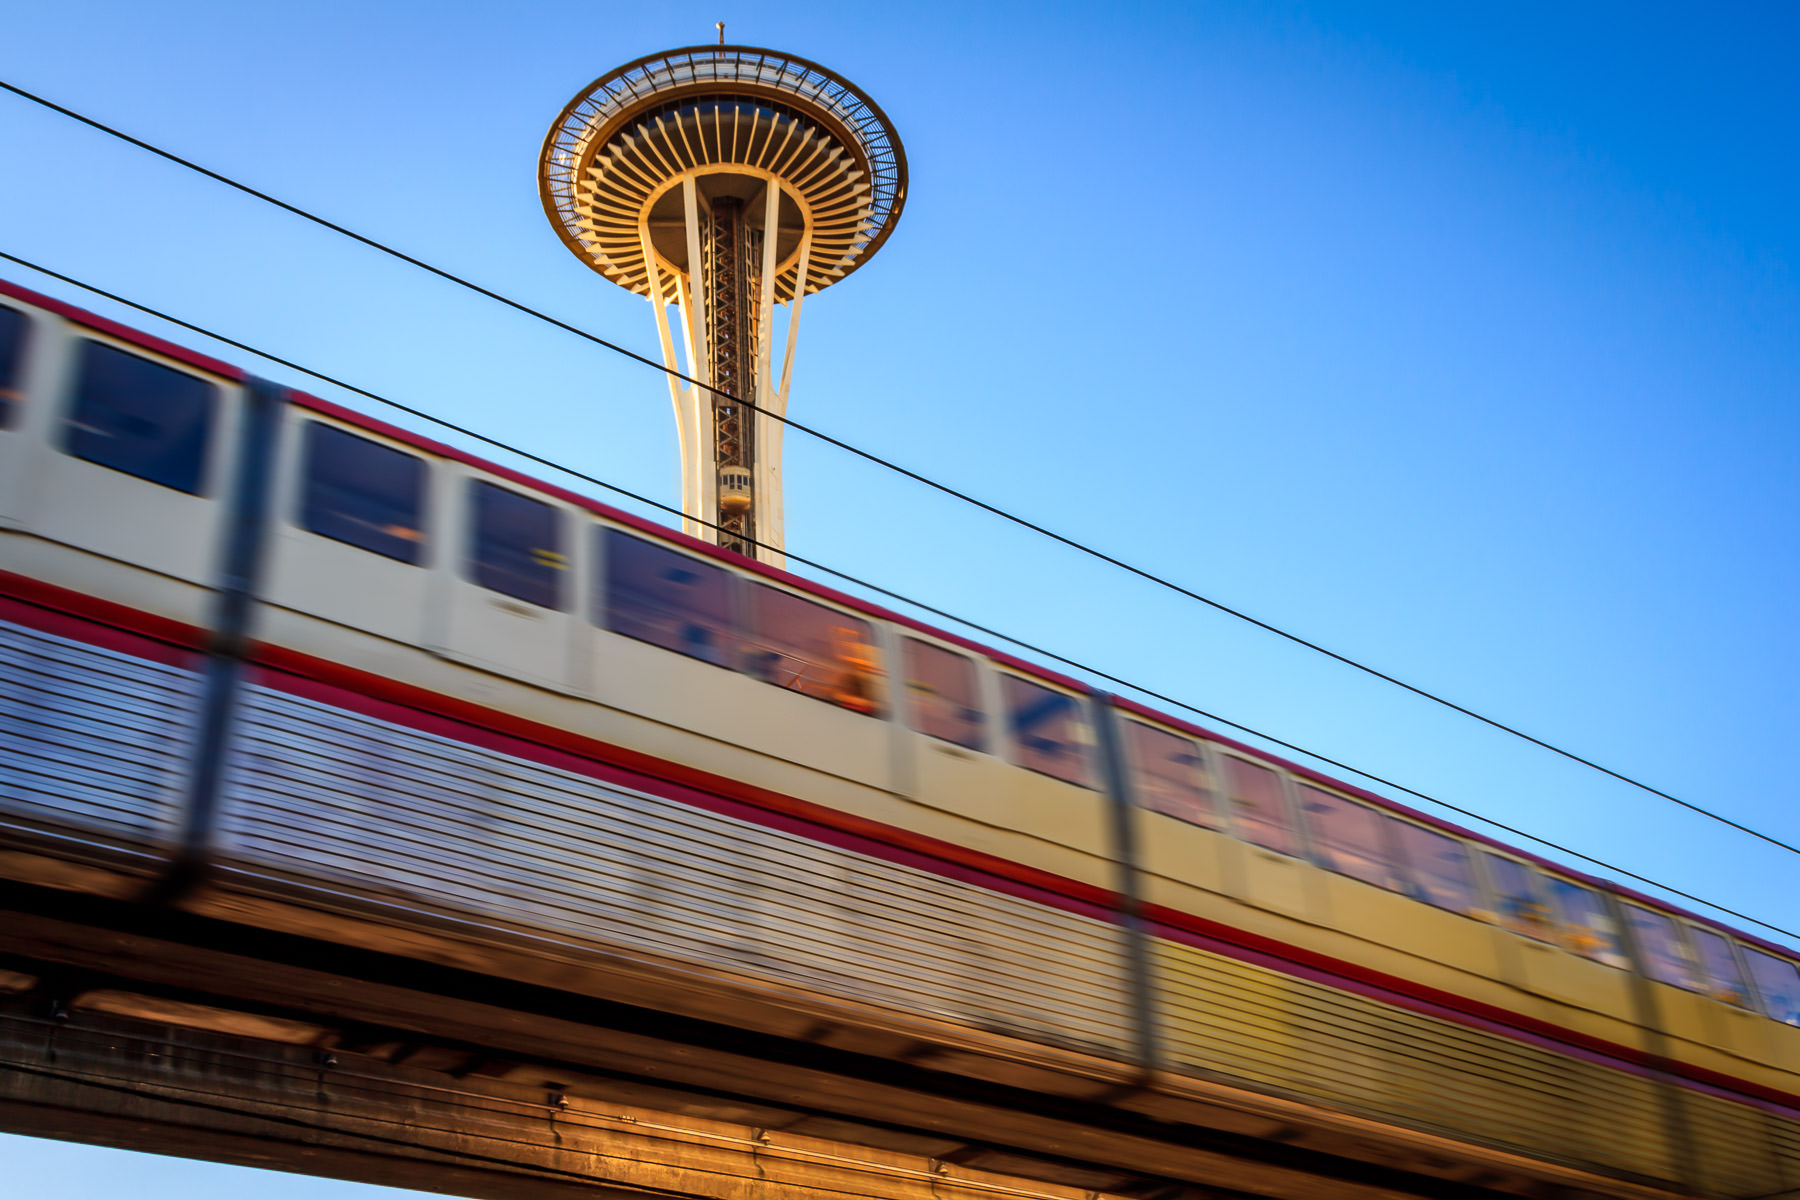 The Seattle Monorail speeds past the Space Needle on its route from the Seattle Center to the Westlake Center.